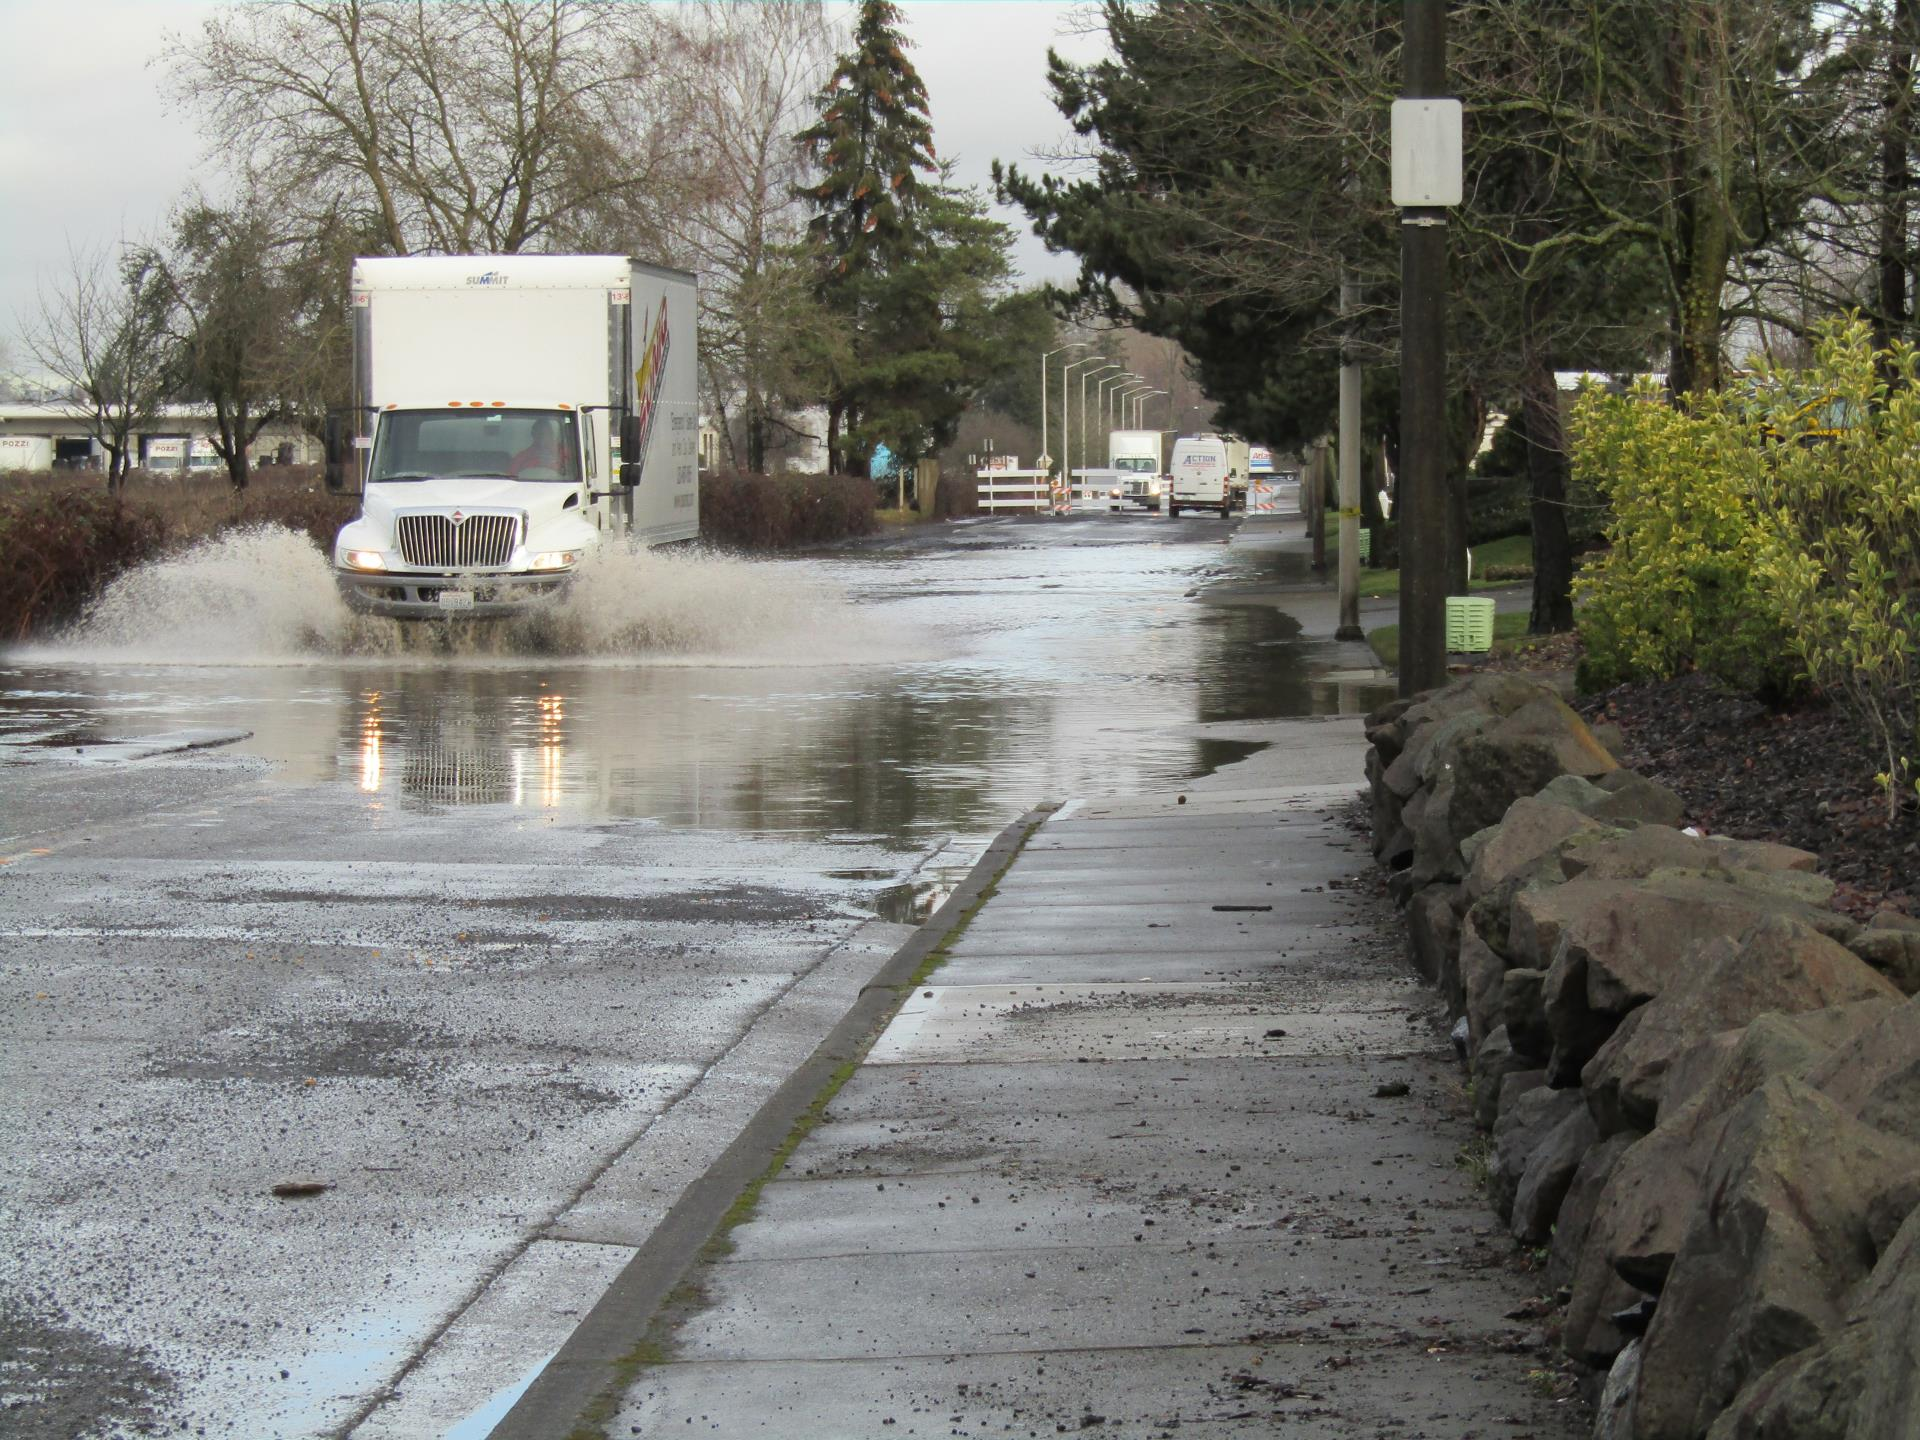 Water over roadway (76th at 212th)